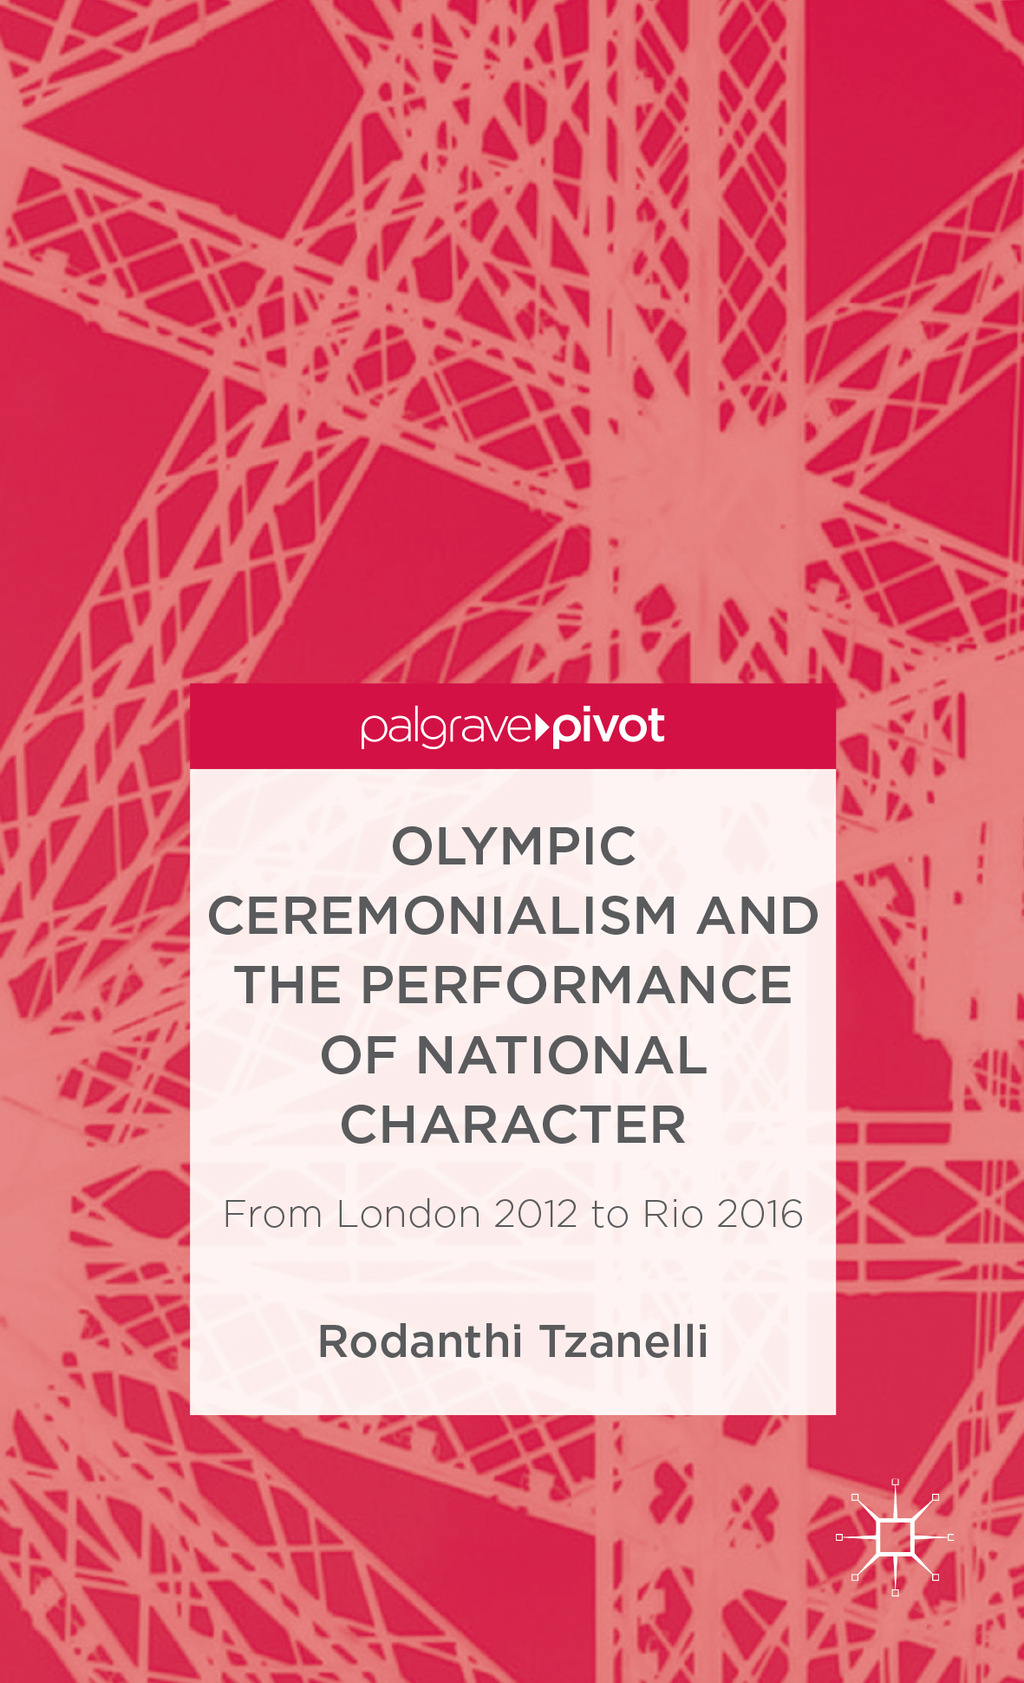 Olympic Ceremonialism and The Performance of National Character From London 2012 to Rio 2016